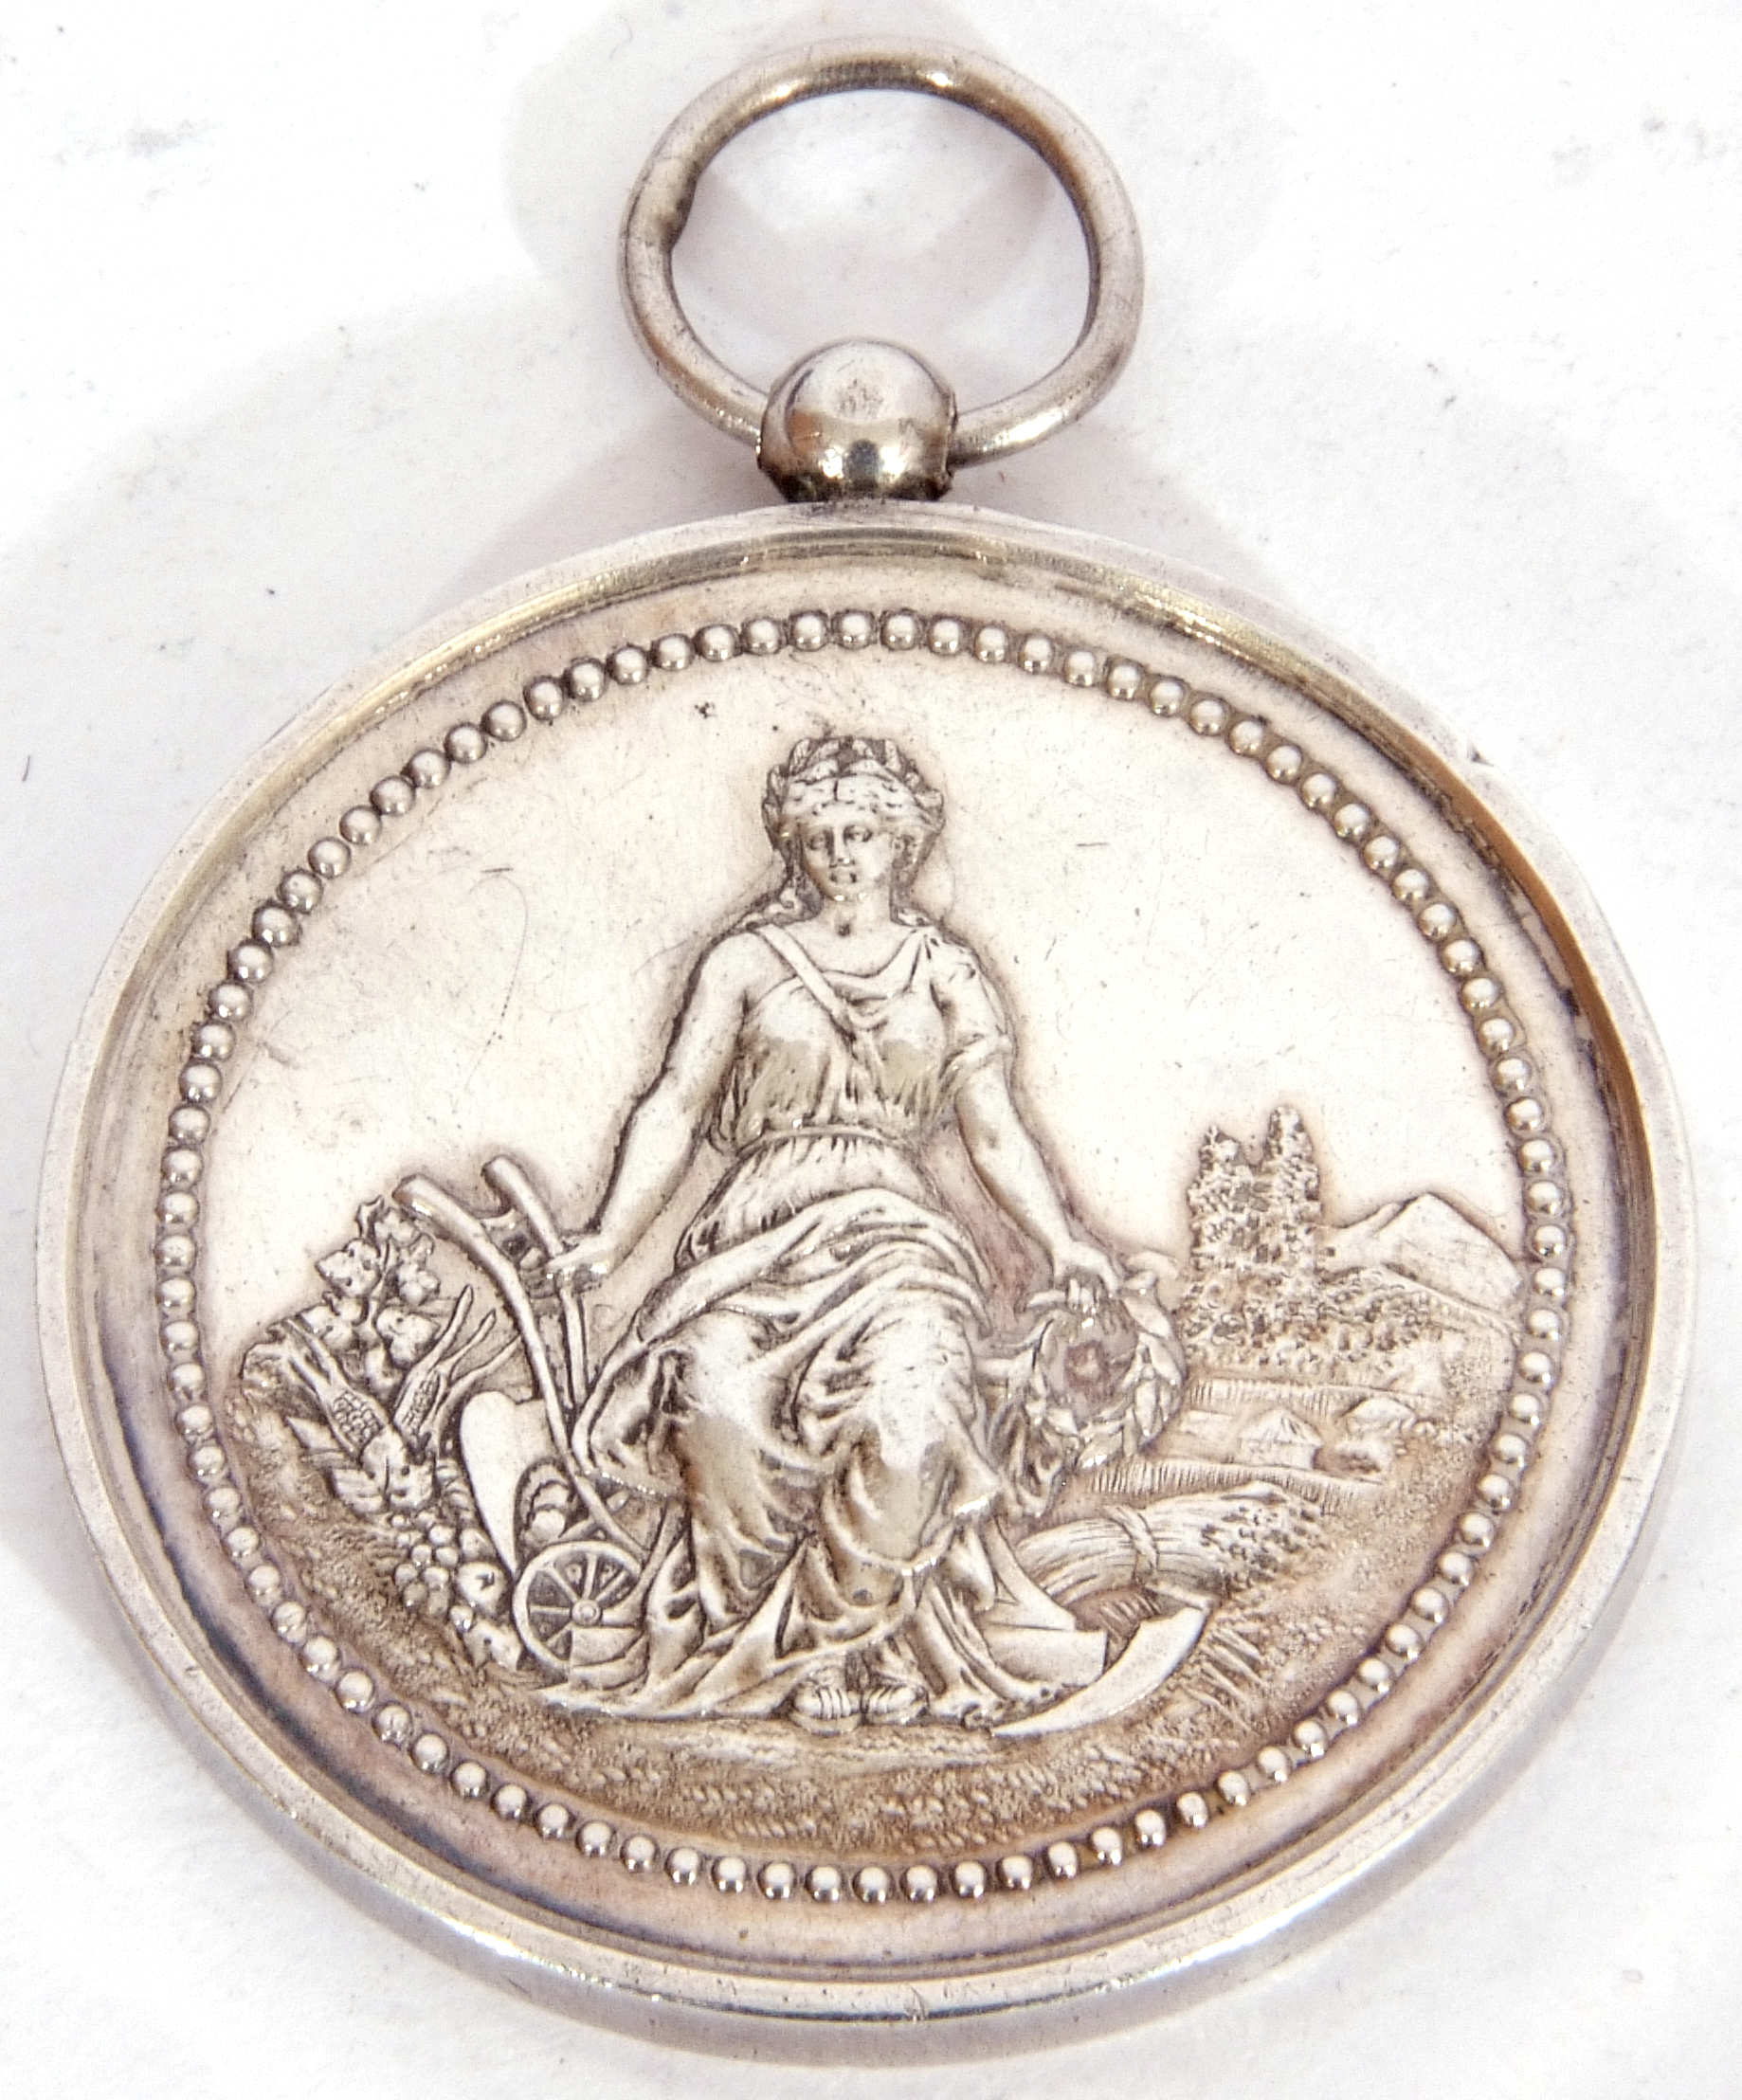 """Hallmarked silver miniature circular dish, """"2000"""" together with a French agricultural medallion - Image 8 of 9"""